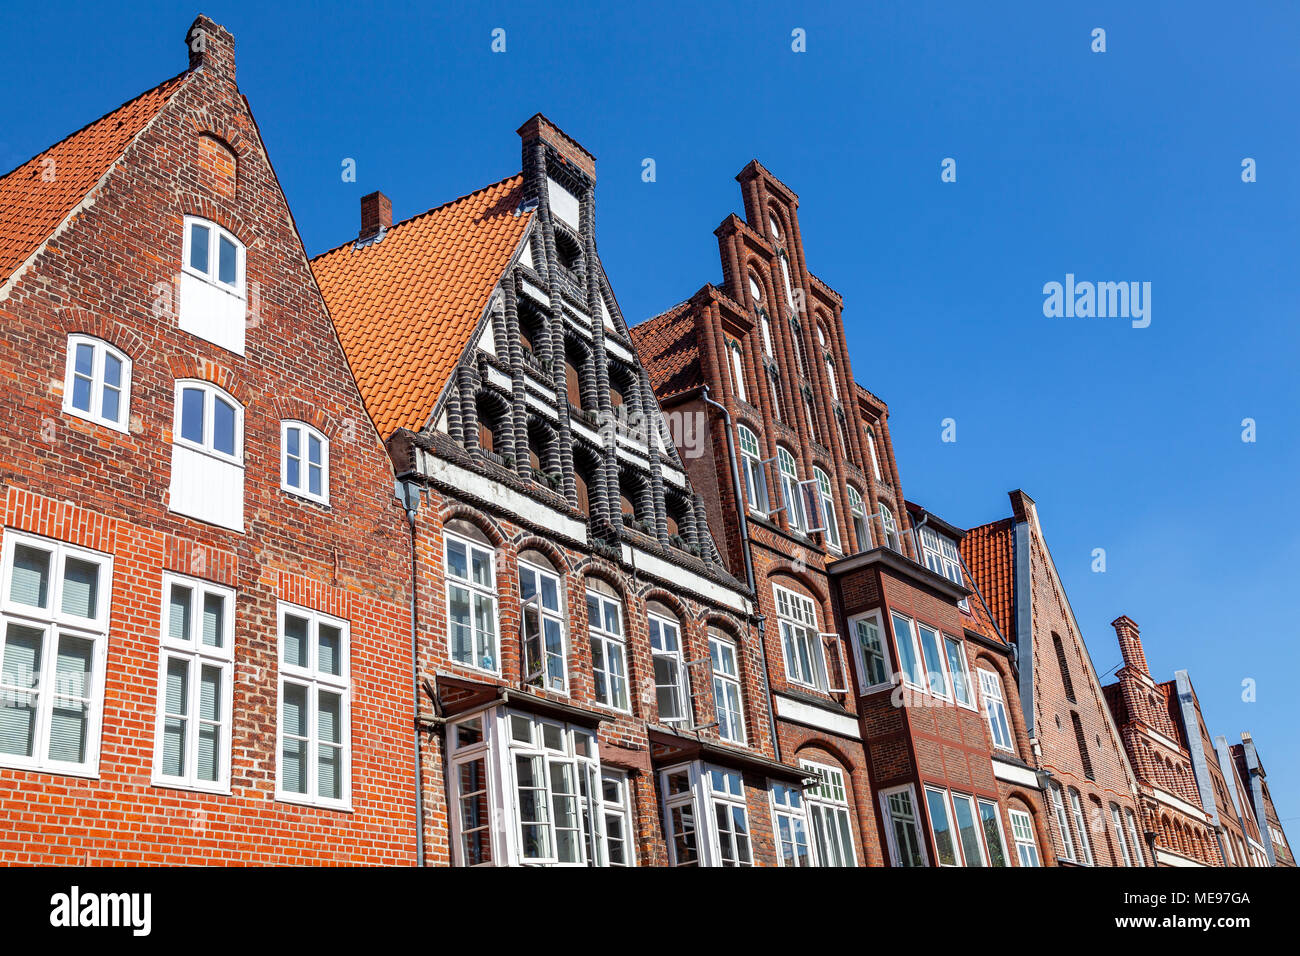 Traditionelle Giebel in Lüneburg, Niedersachsen, Deutschland Stock Photo